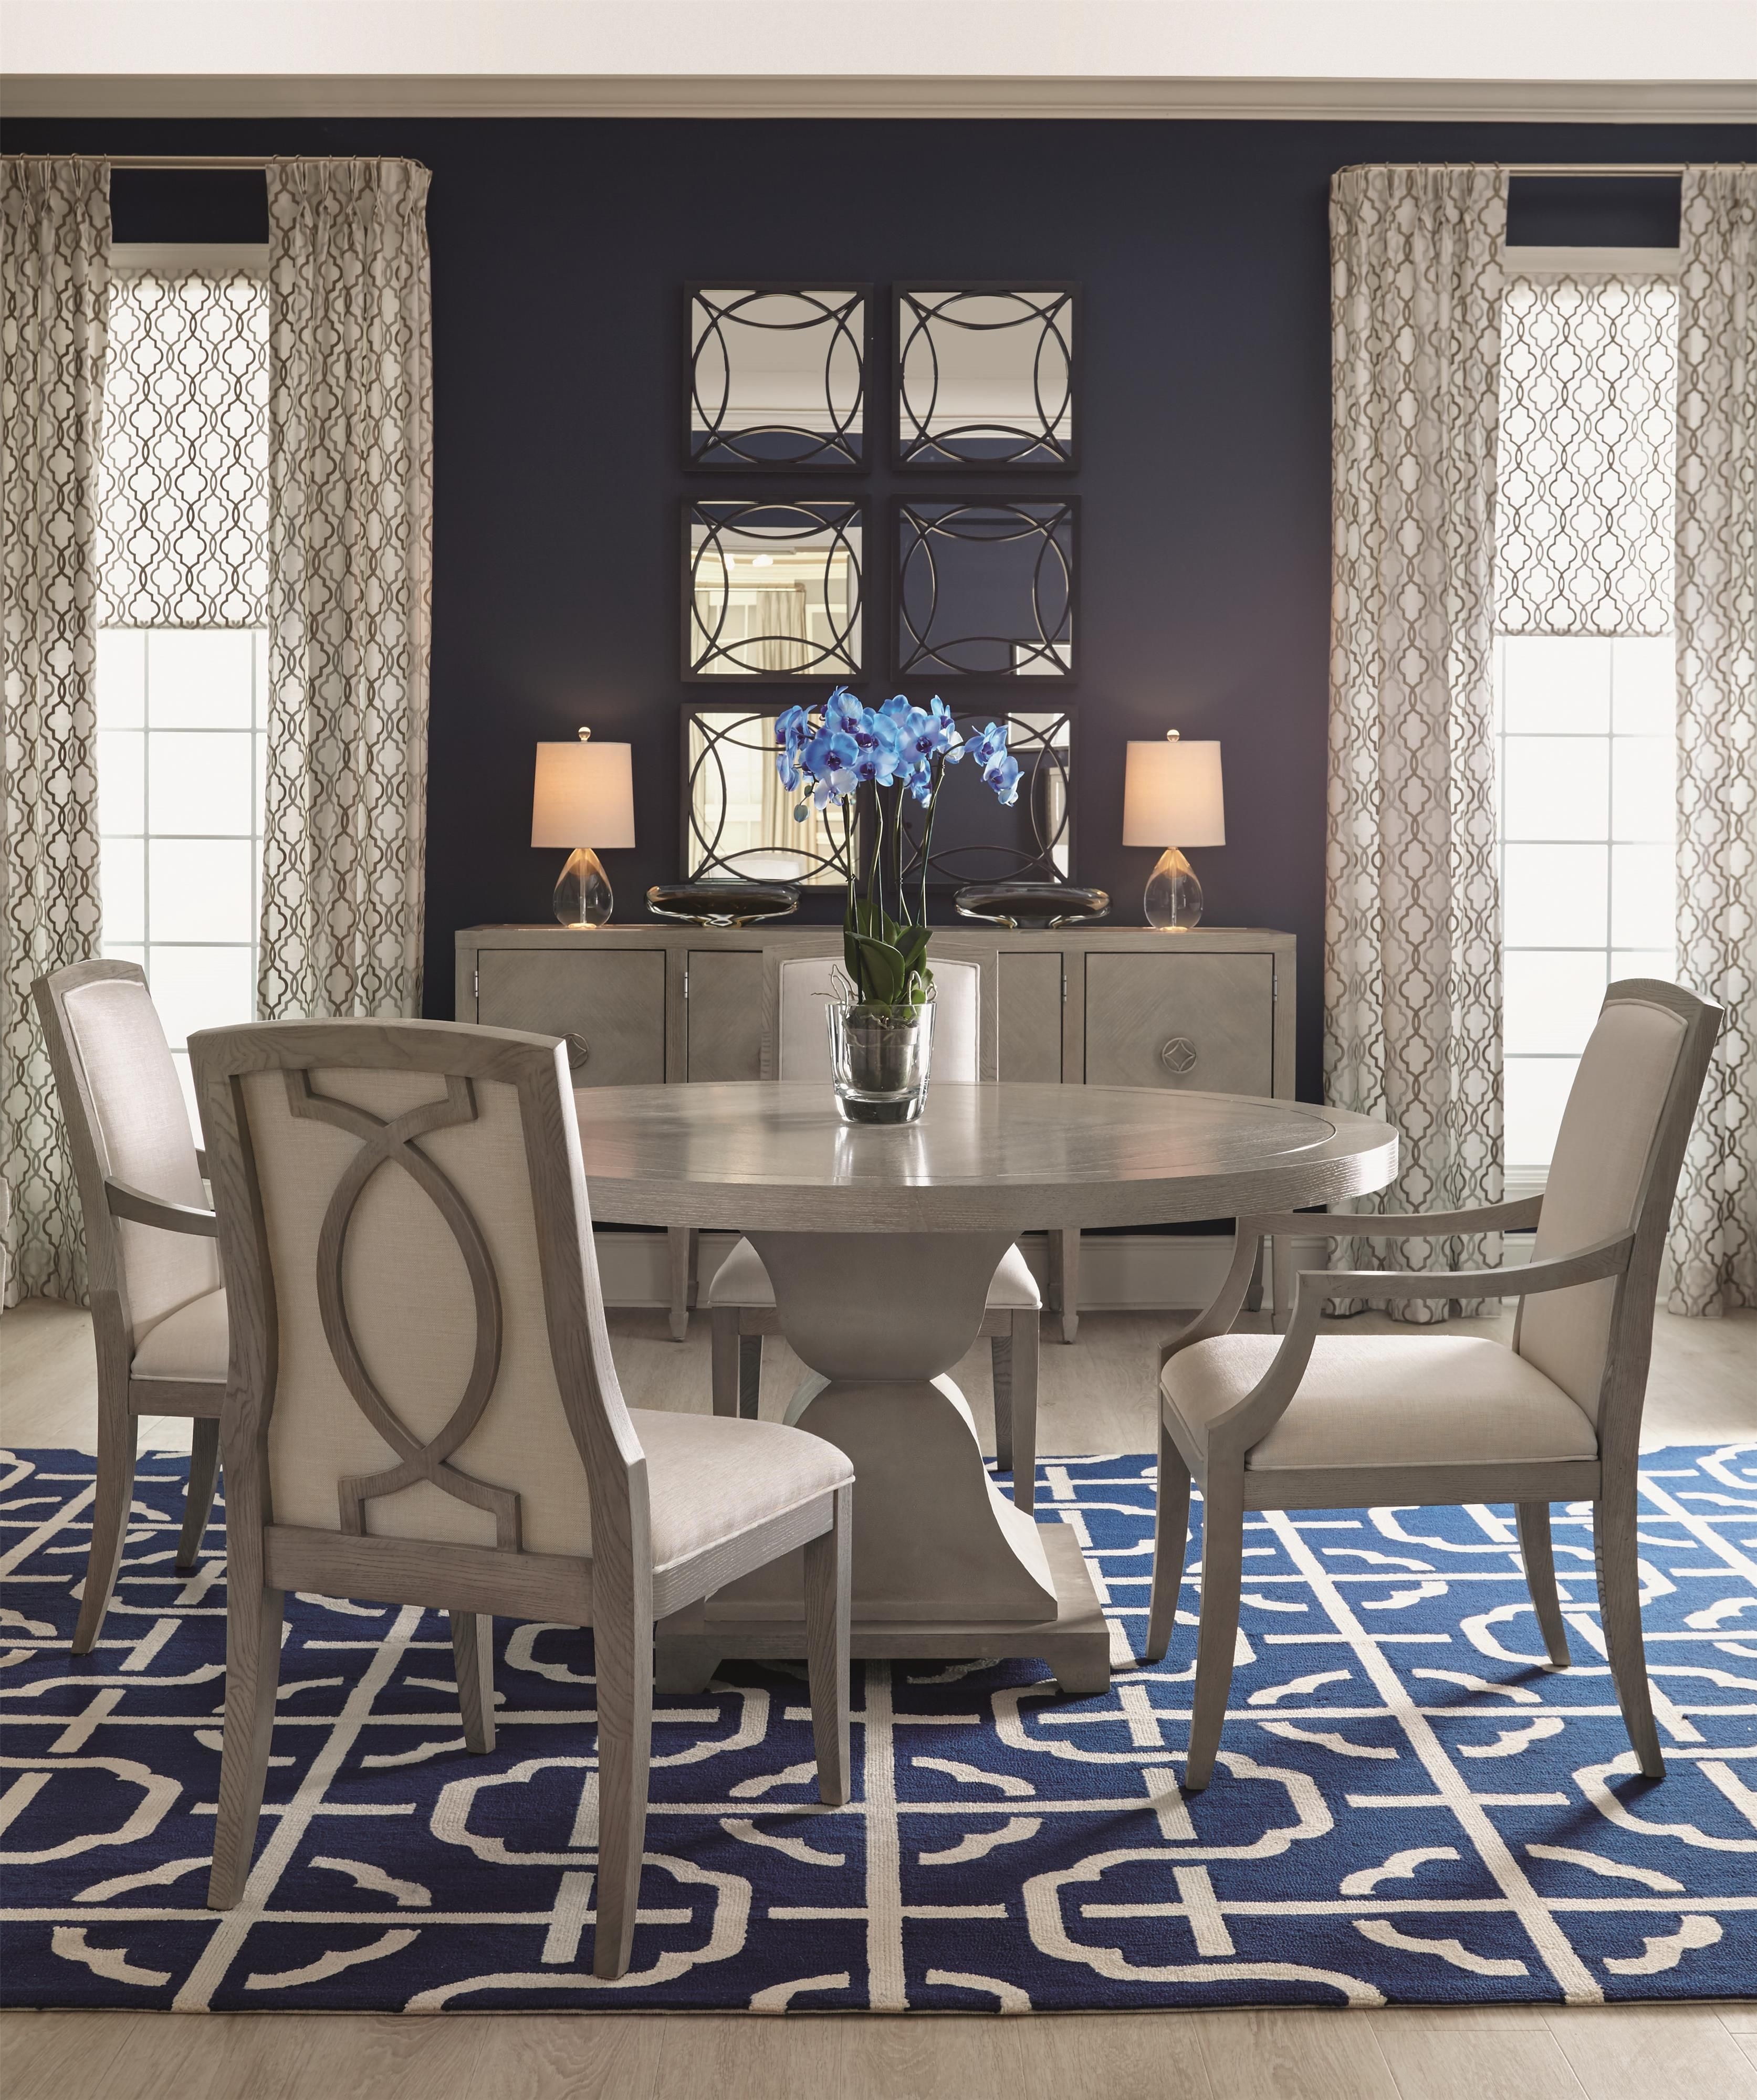 Decorate Your Dinning With These Lovely Christmas Chair: Soften Your Dining Room With Curtains, Drapes, And Rugs